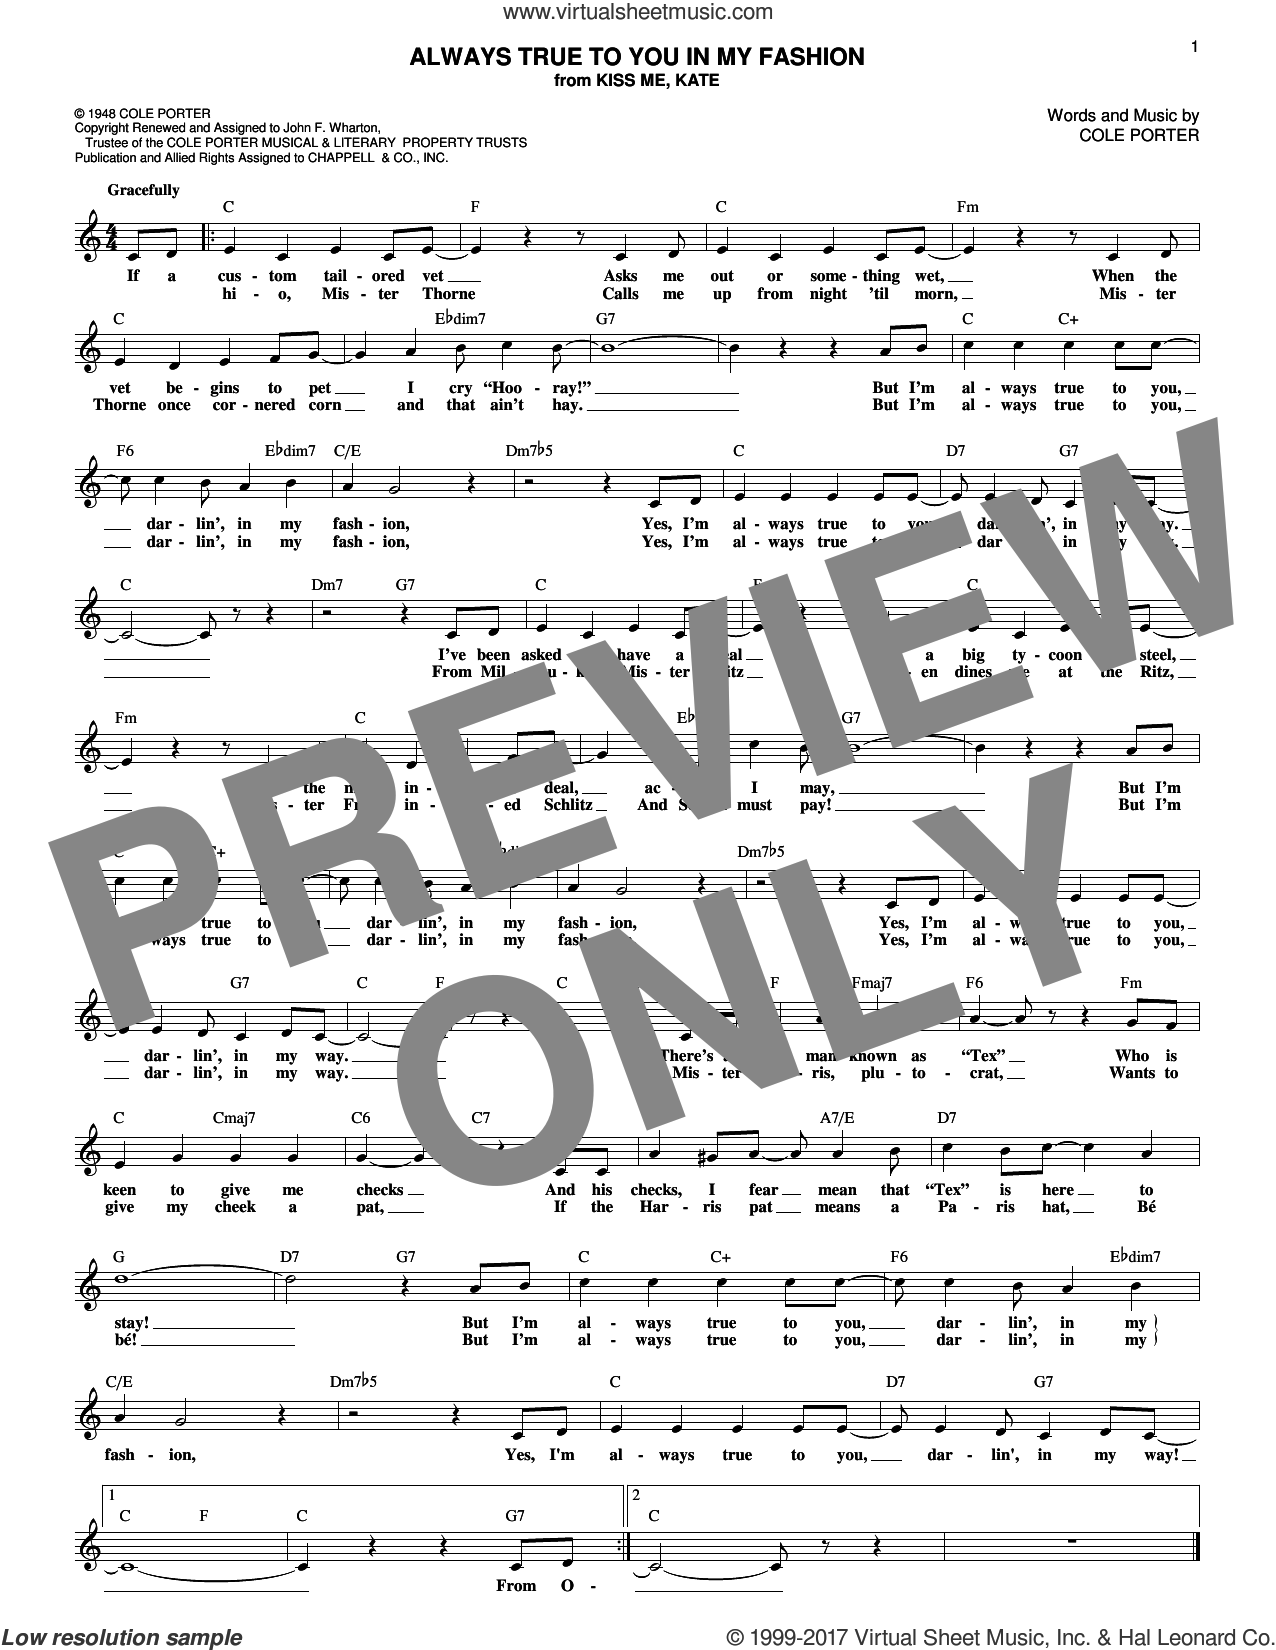 Always True To You In My Fashion sheet music for voice and other instruments (fake book) by Cole Porter, Ann Miller & Tommy Rall, Jane Harvey and Jo Stafford, intermediate. Score Image Preview.